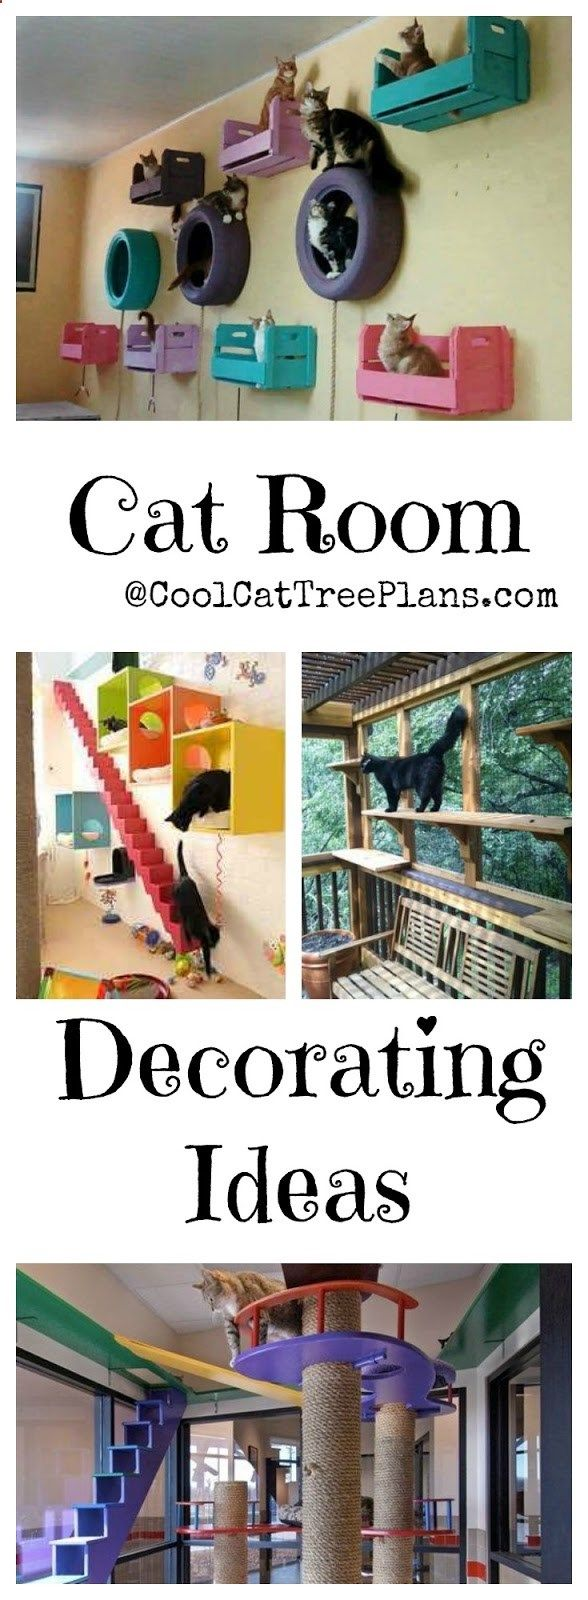 DIY Cat Decor For Small Spaces, Apartments And Homes Of All